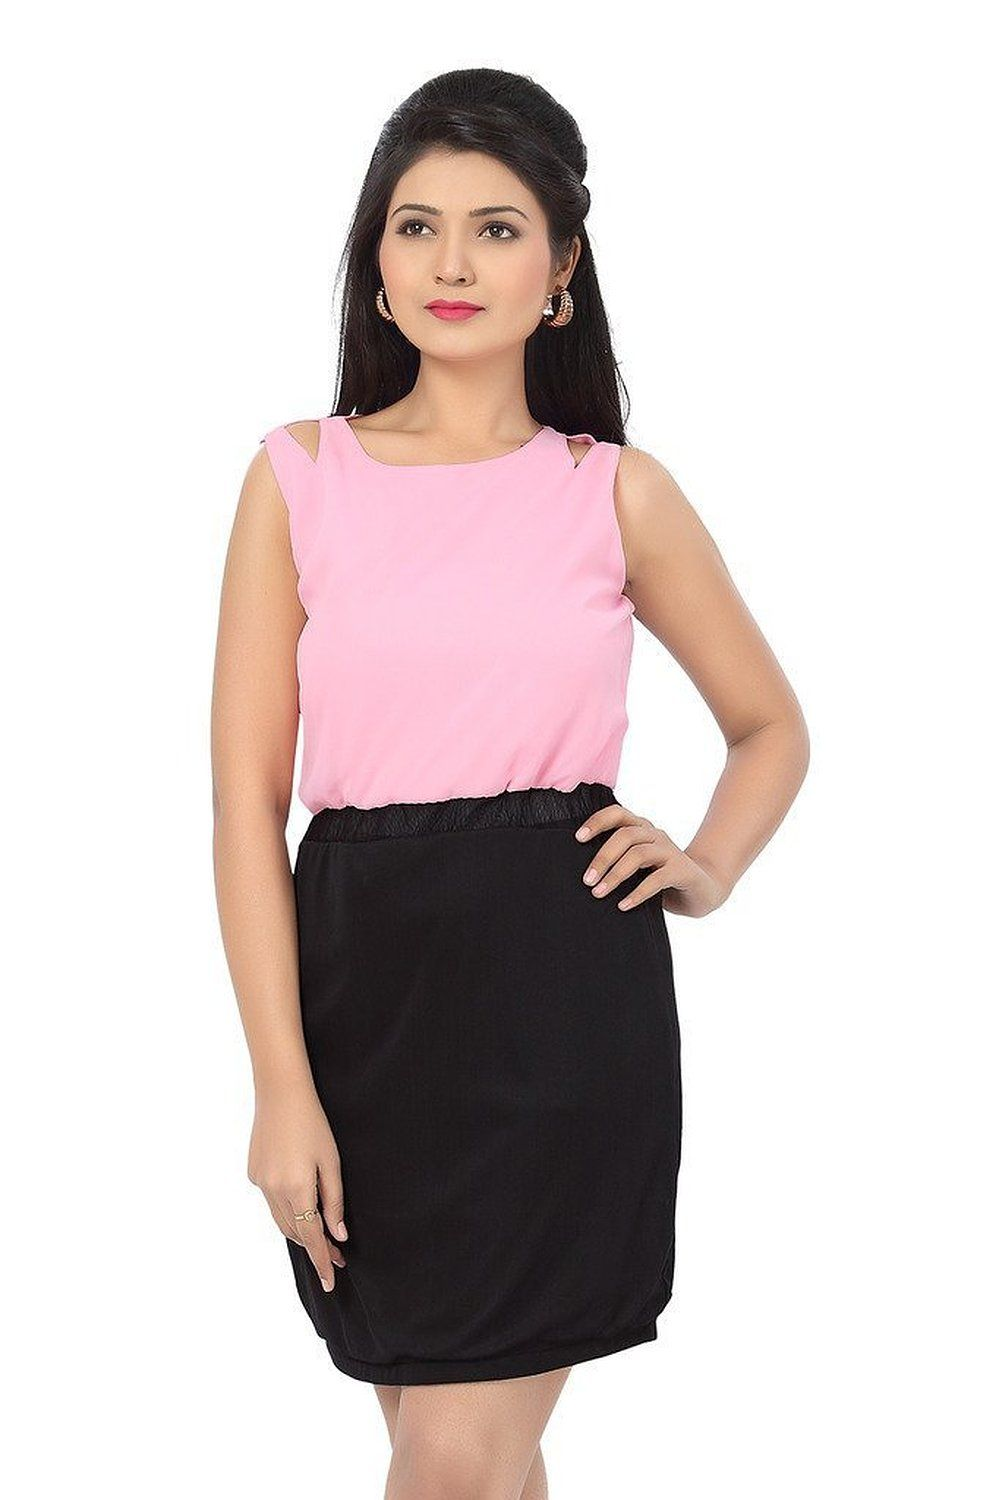 767c11b75003d3 Ishin Georgette Pink and Black Pencil Dress: Amazon.in: Clothing &  Accessories